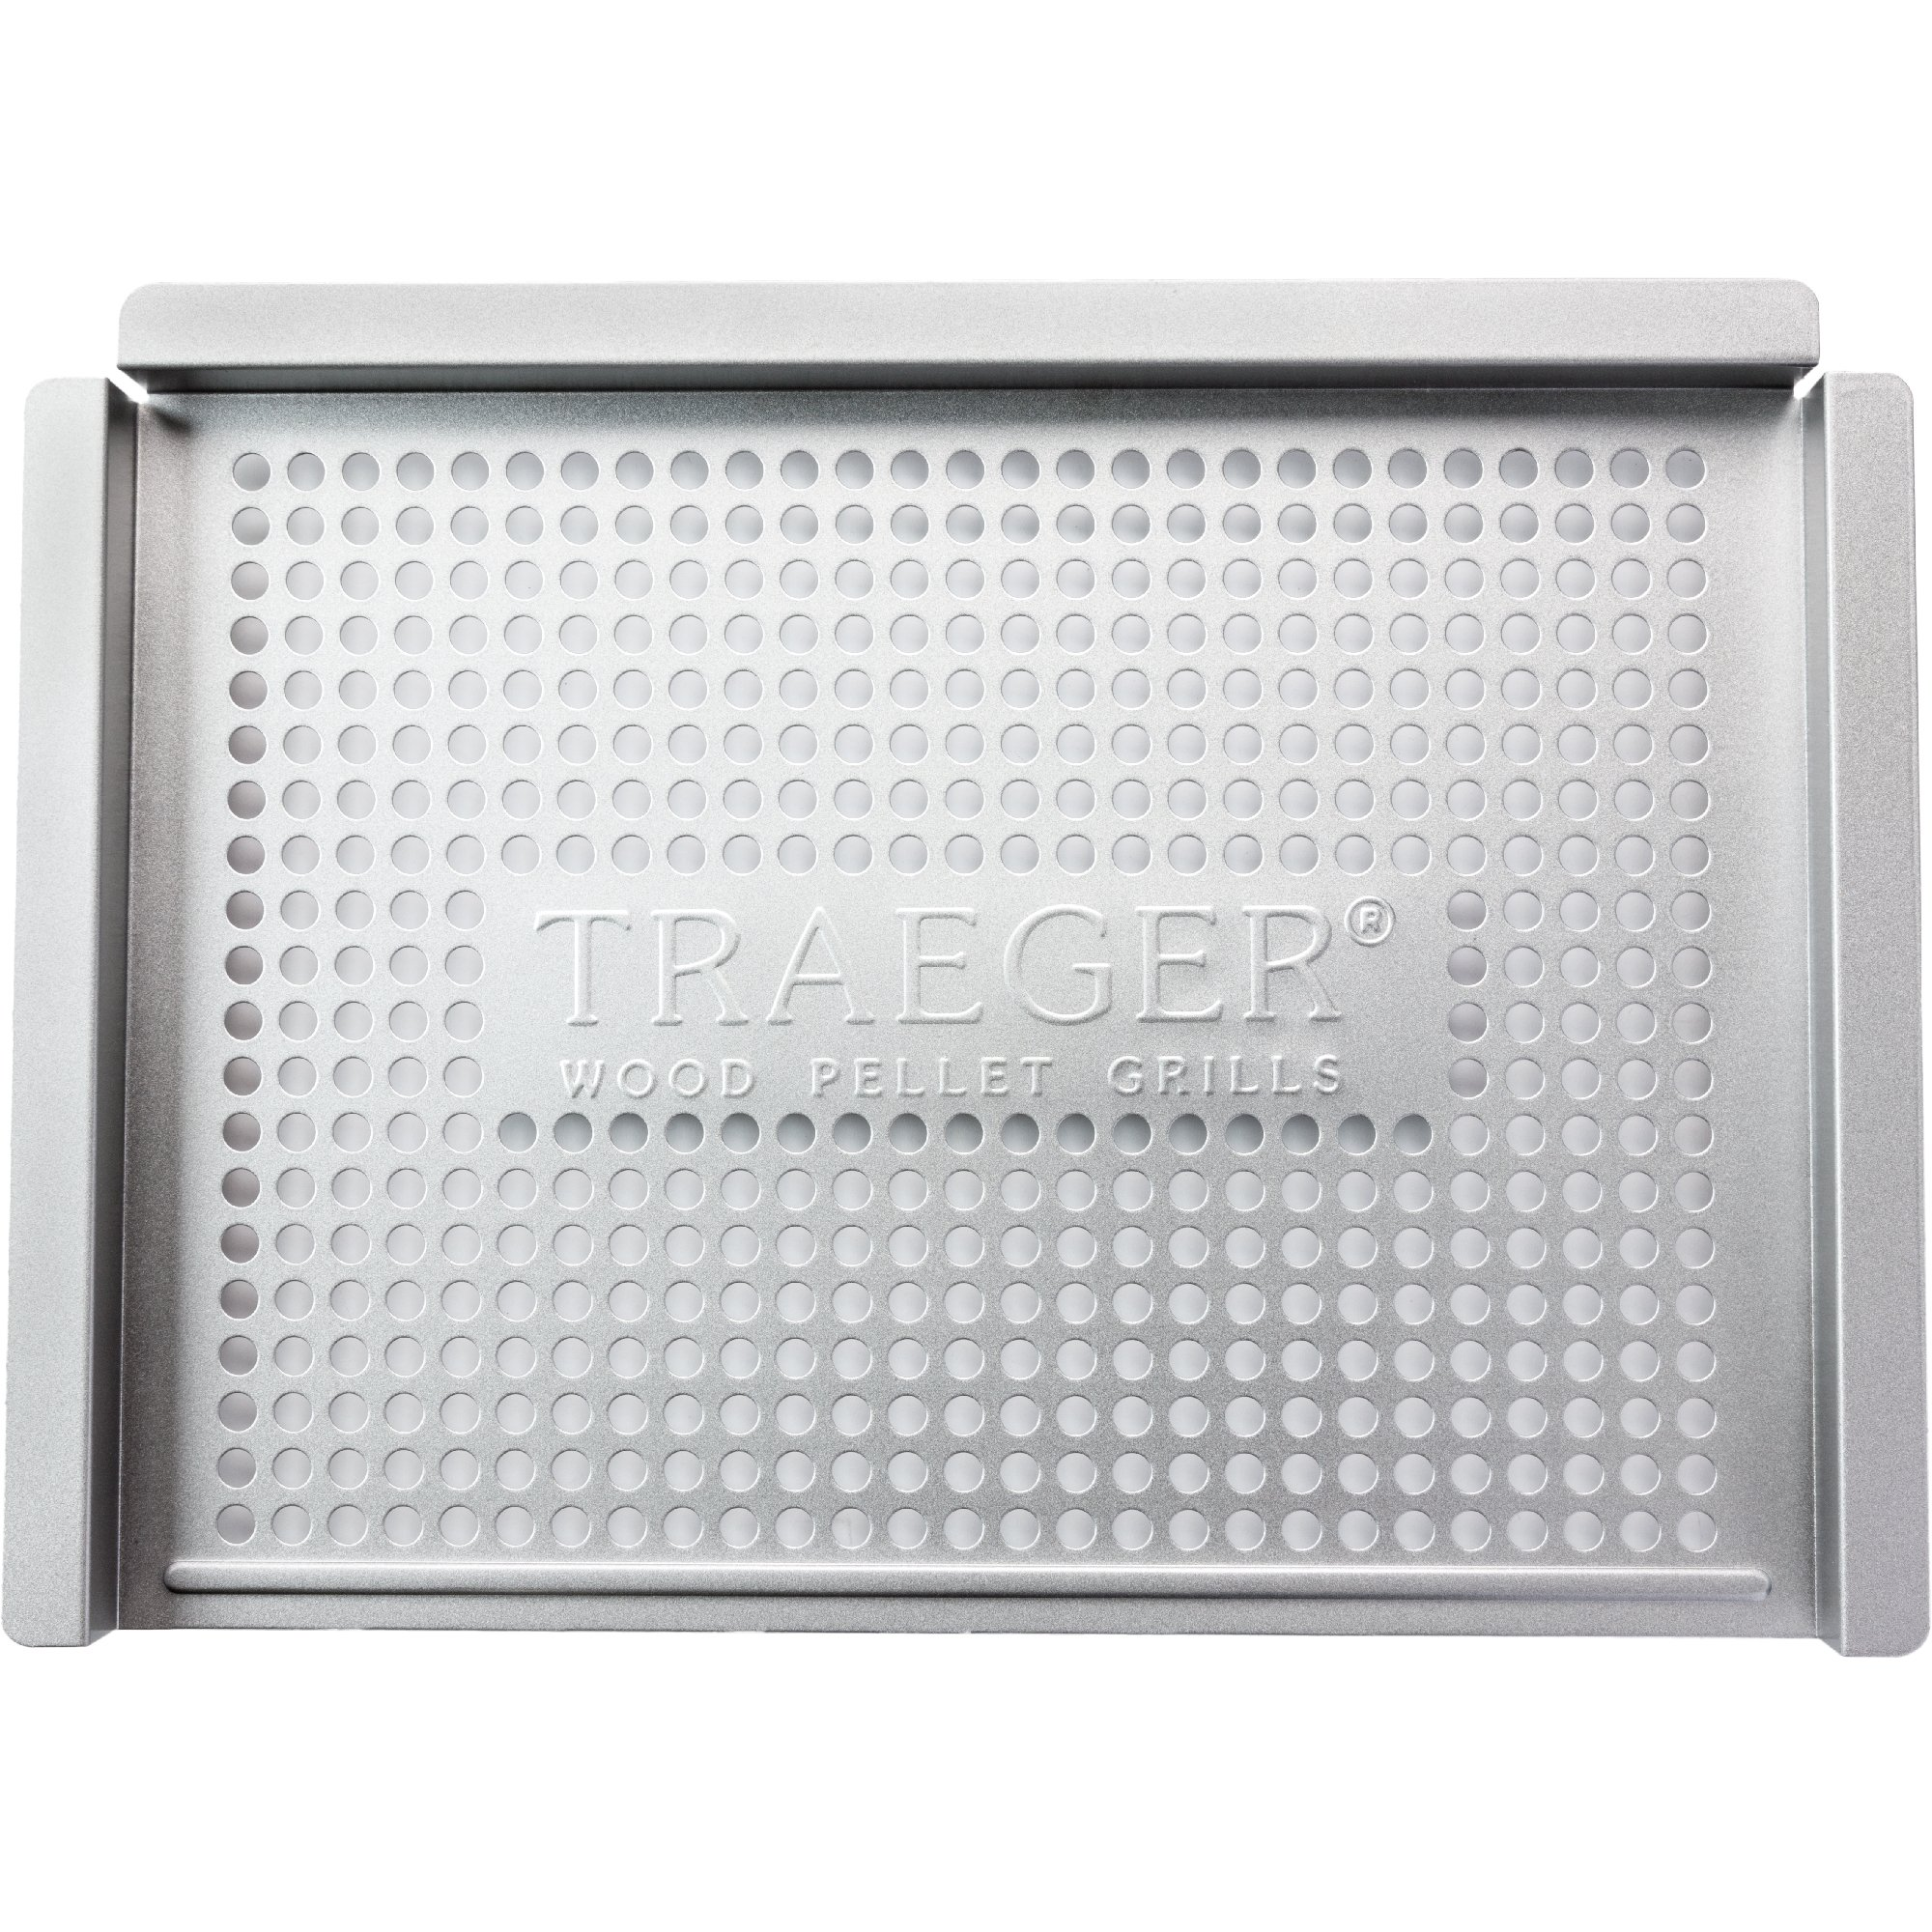 Traeger Grills BAC273 Stainless Steel Grill Basket by Traeger